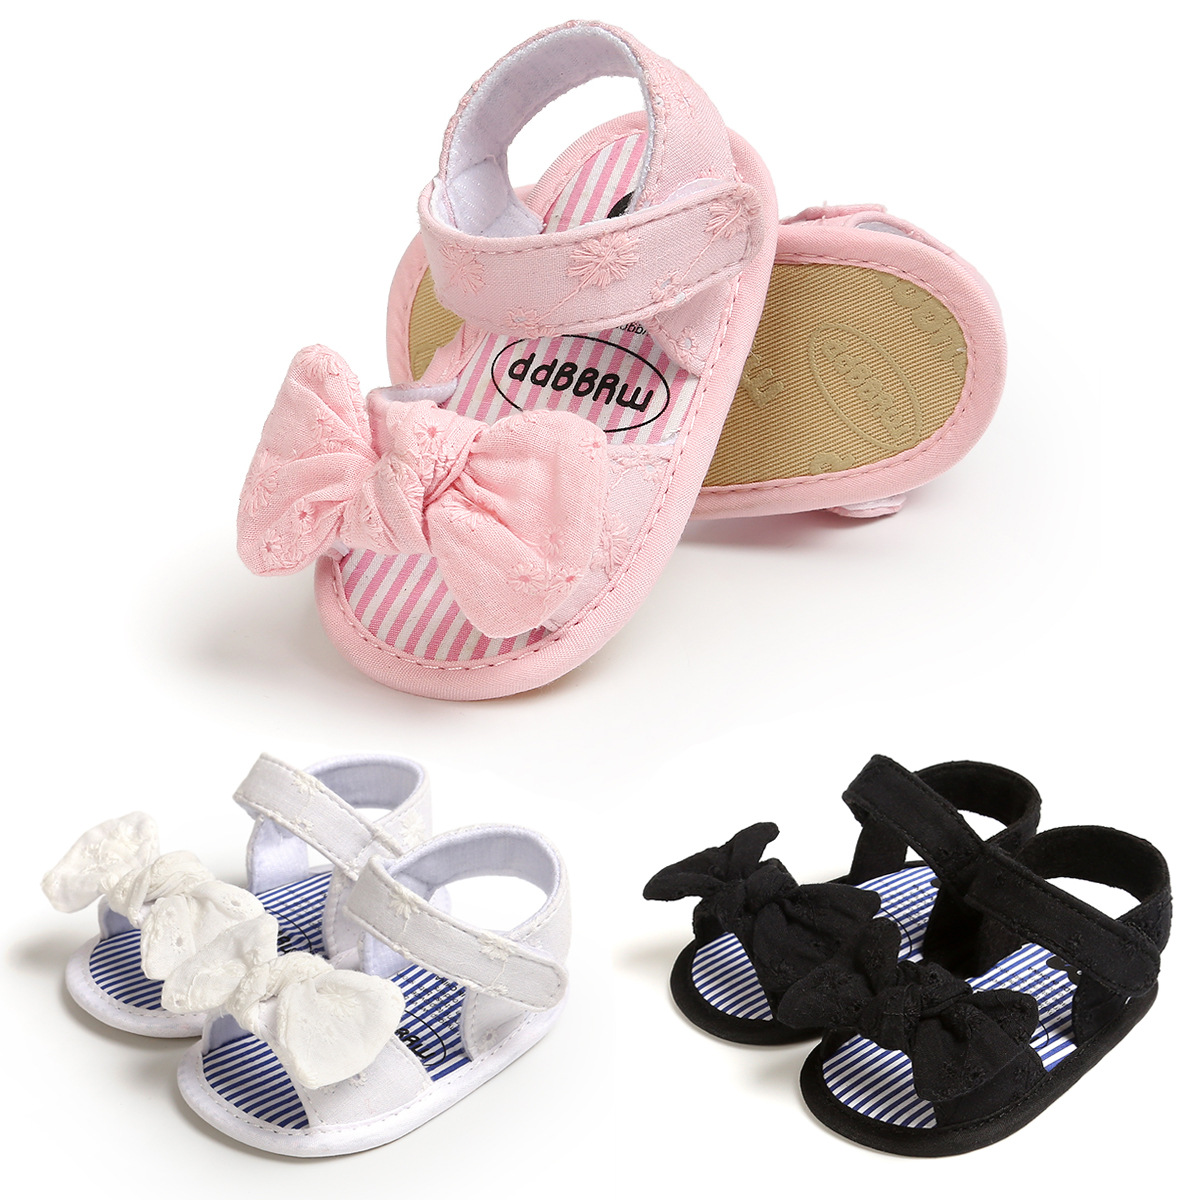 Anti-slip Cotton Baby Girls Shoes Butterfly Sandals Toddler Shoes First Walkers Shoes Summer Prewalkers Kids Casual Slippers